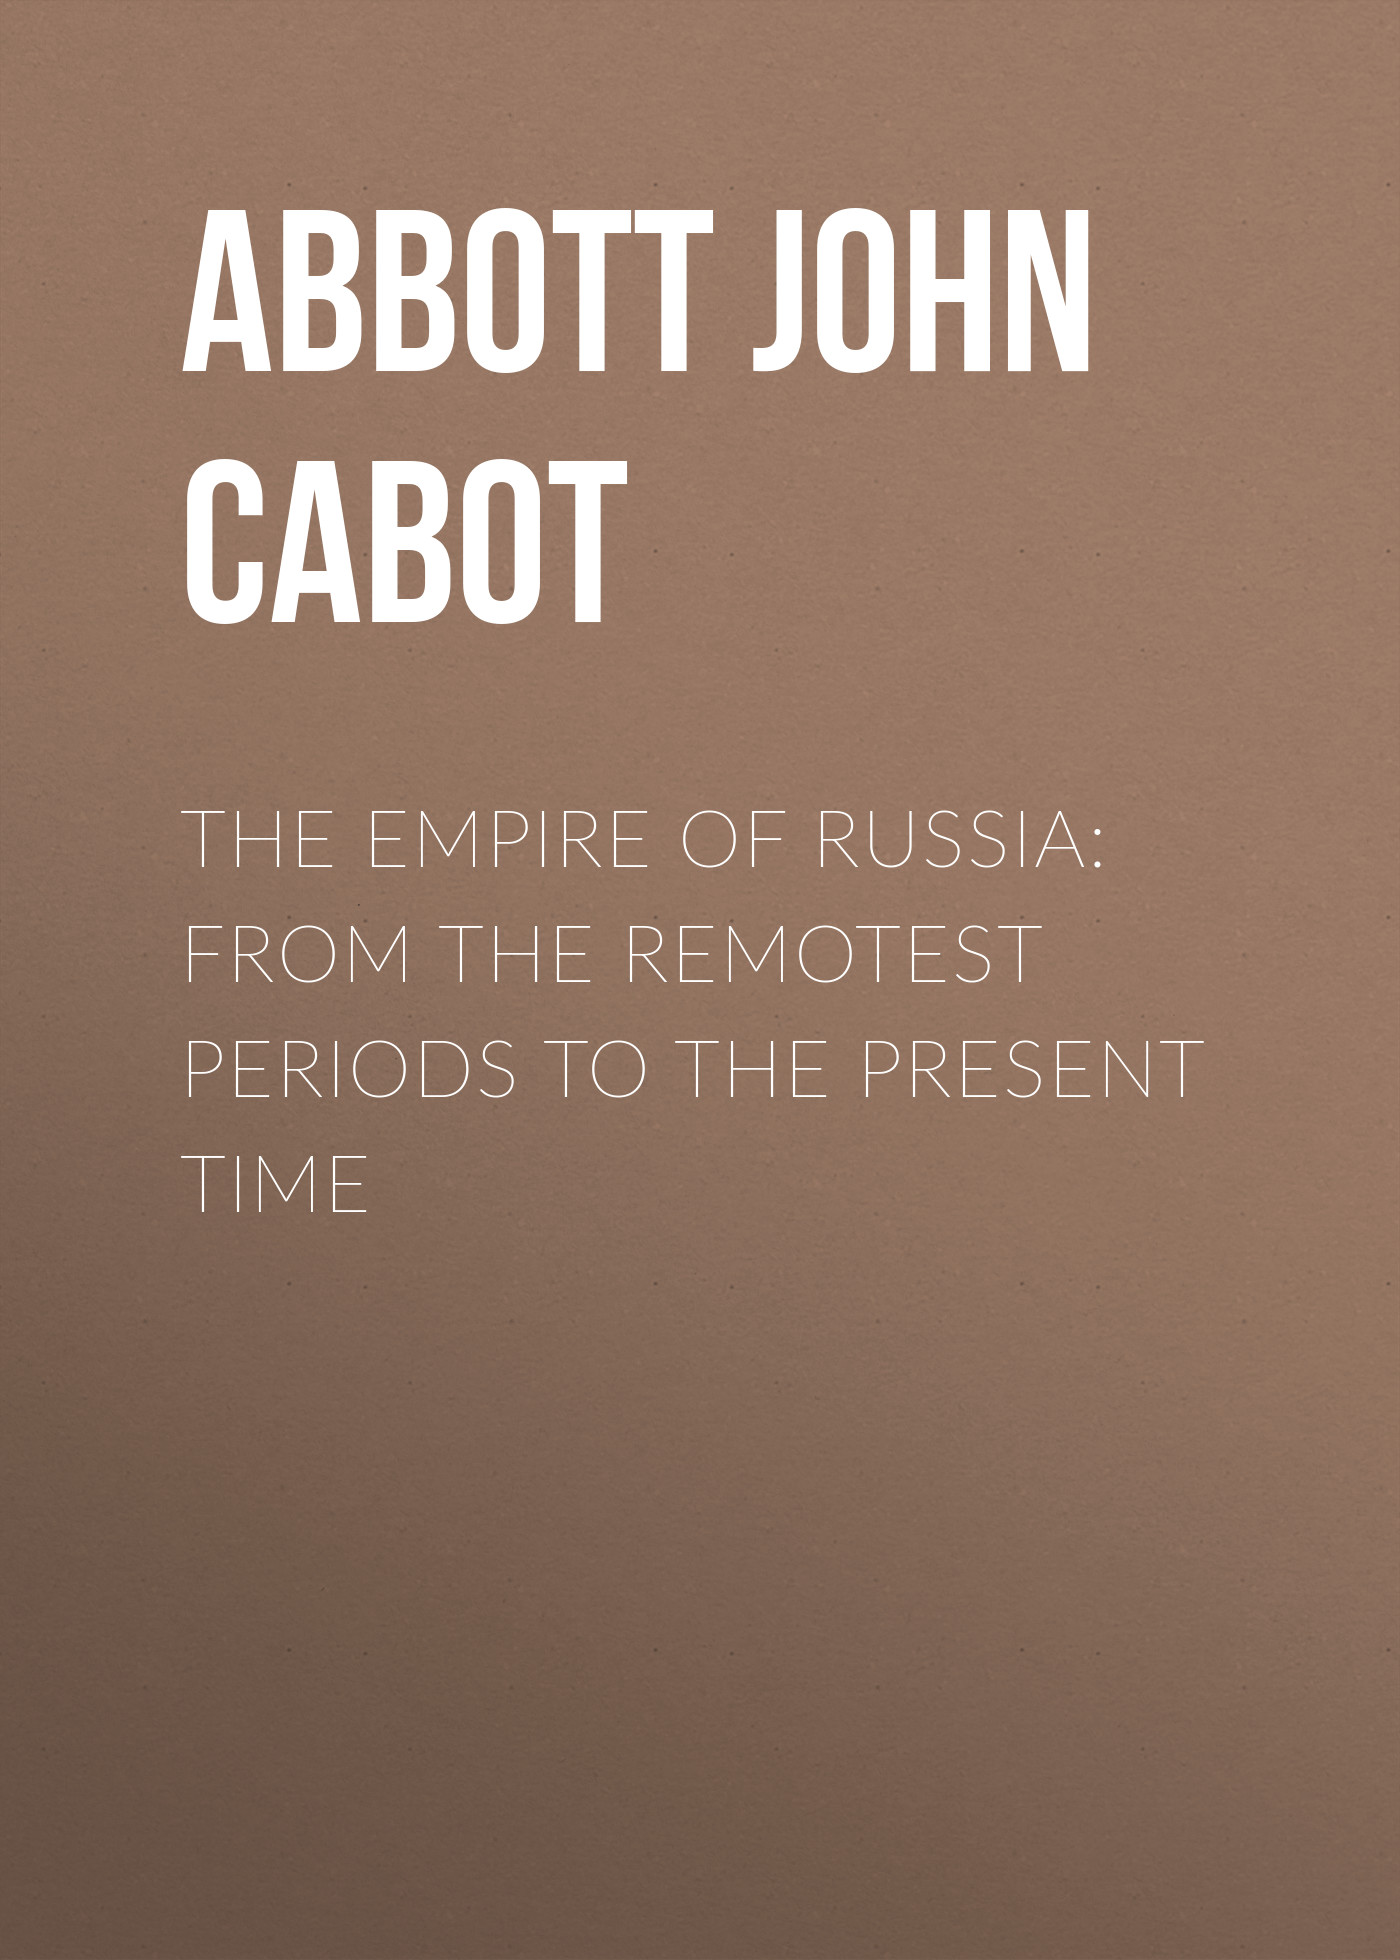 Abbott John Stevens Cabot The Empire of Russia: From the Remotest Periods to the Present Time